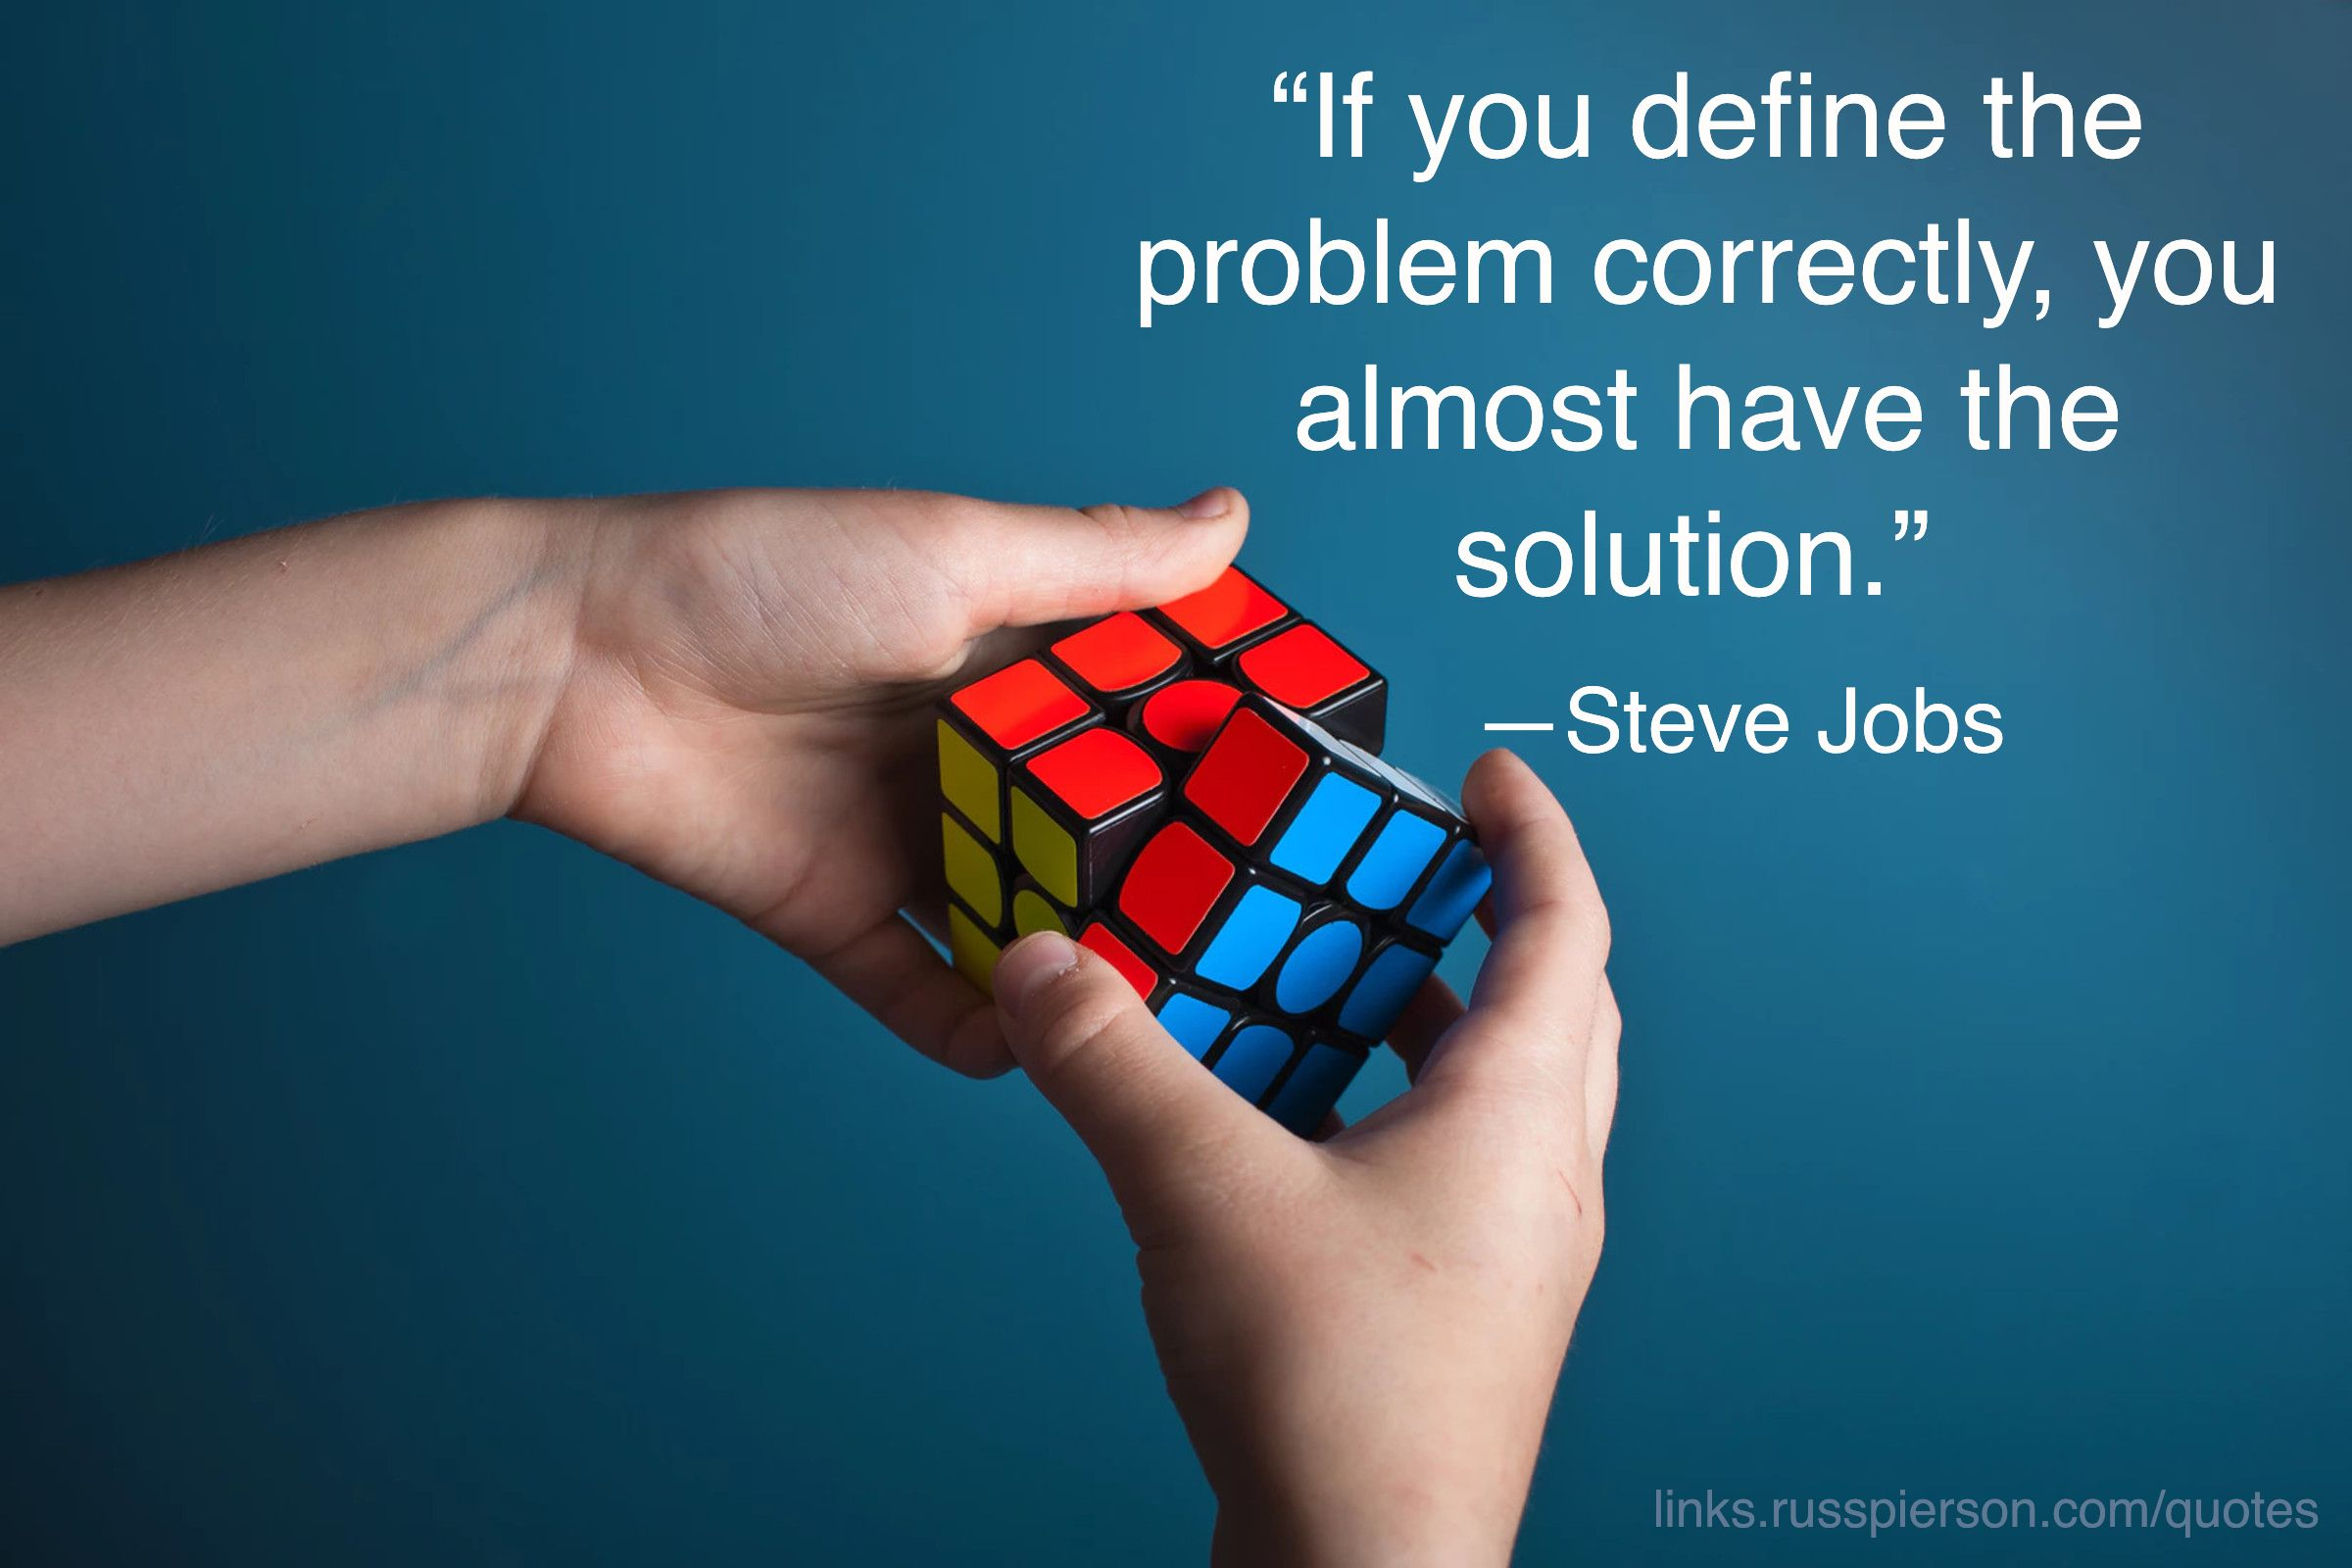 If You Define The Problem Correctly You Almost Have The Solution Links Russpierson Com Quotes Steve Jobs Quotes Life Quotes Steve Jobs